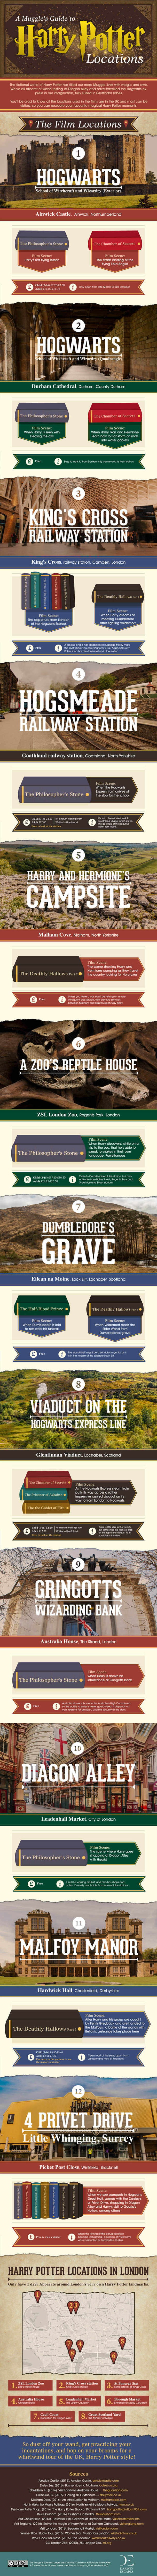 A complete guide to Harry Potter film locations #infographic